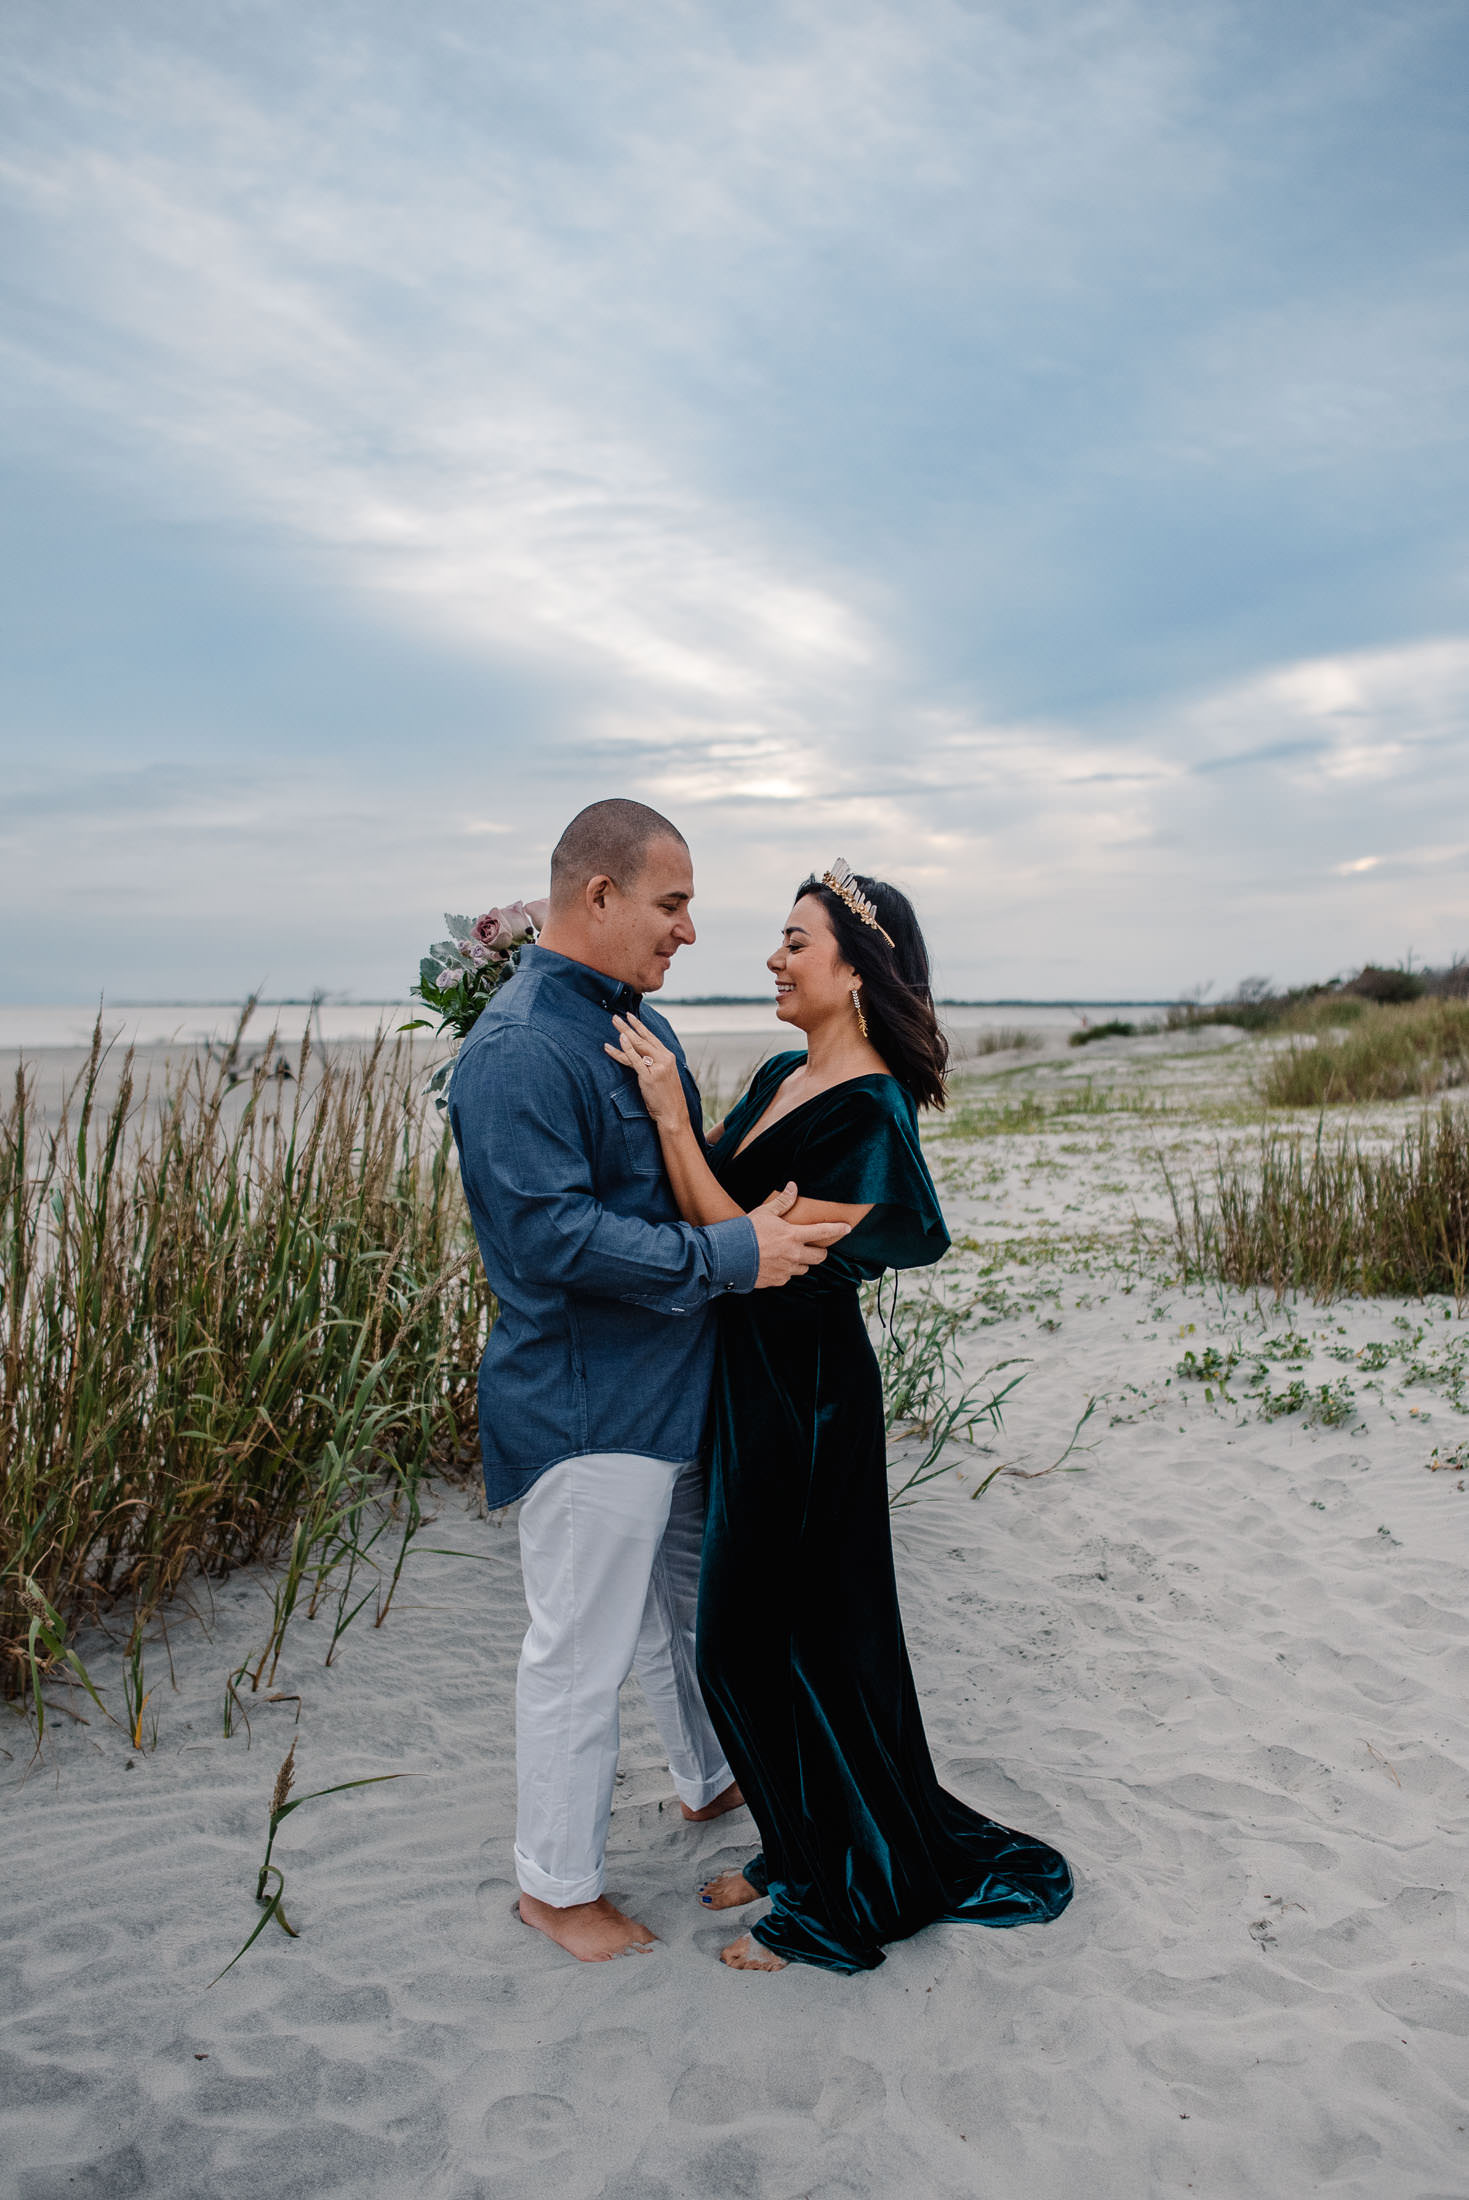 Couple on anniversary trip in Folly Beach, SC standing on sand with grass near them and blue skies behind them